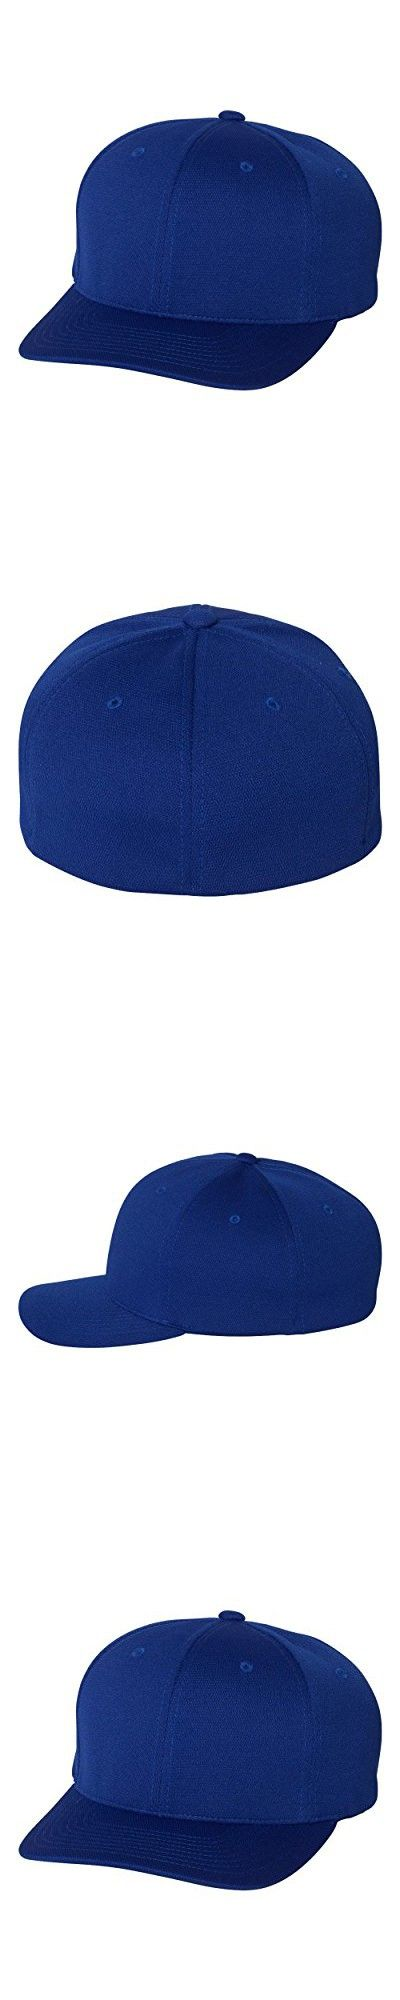 Yupoong 6597 Cool and Dry Sport Cap - Royal - 'S/M